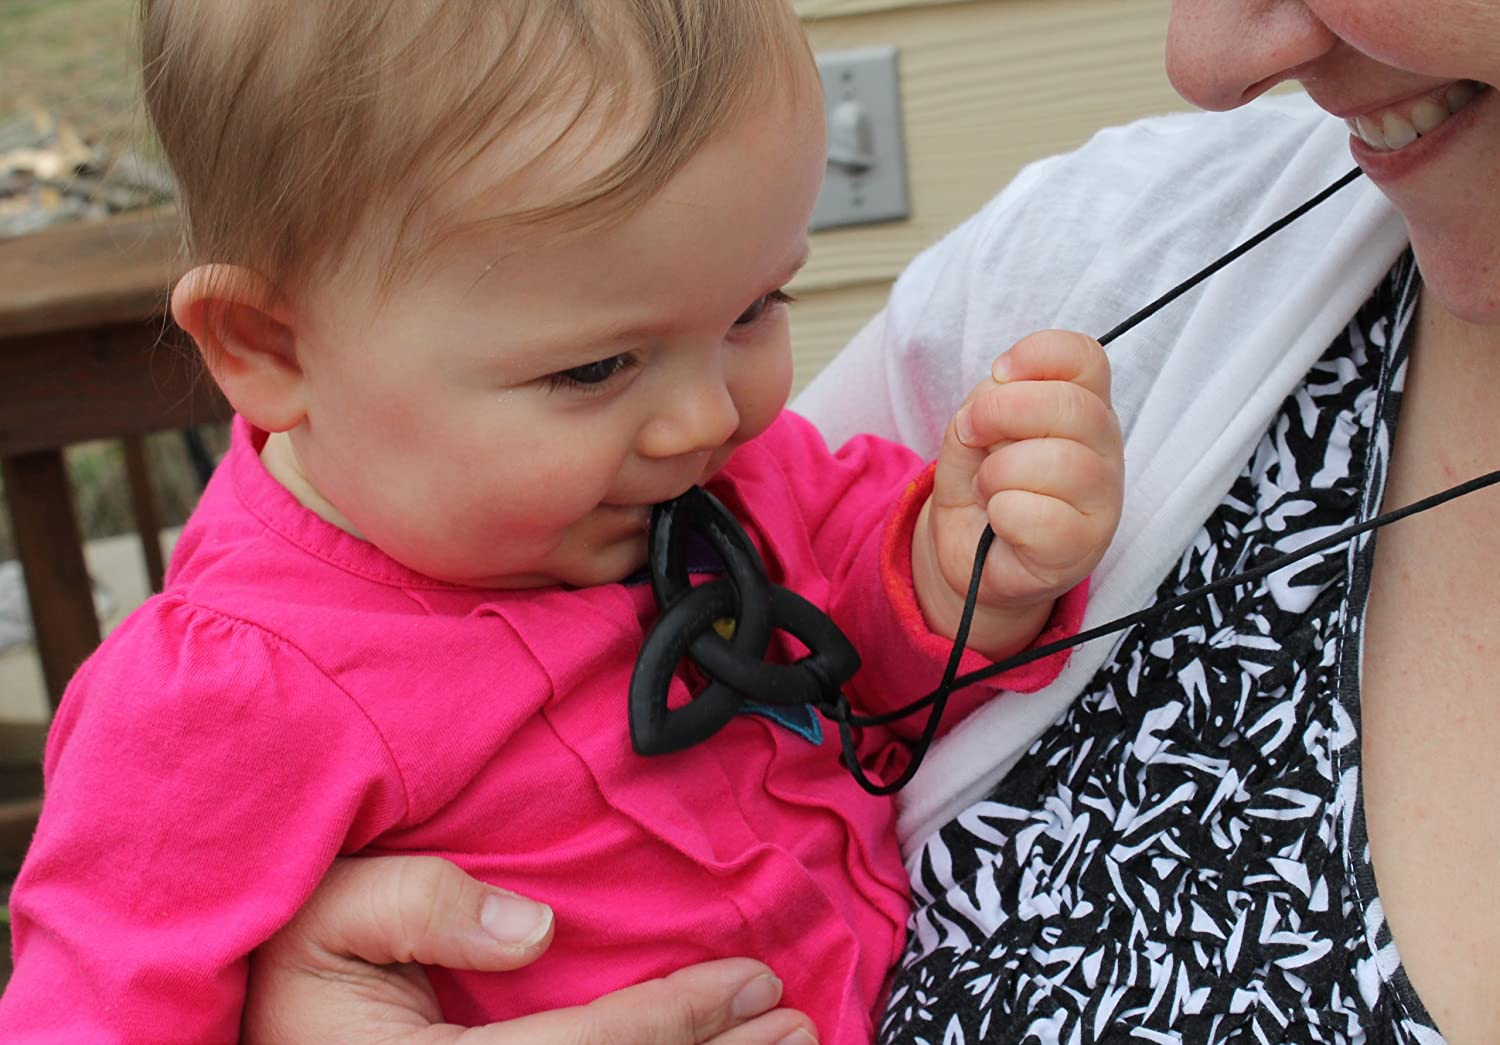 Black Peacemaker Jewelry Trinity Knot Silicone Teething Pendant Necklace